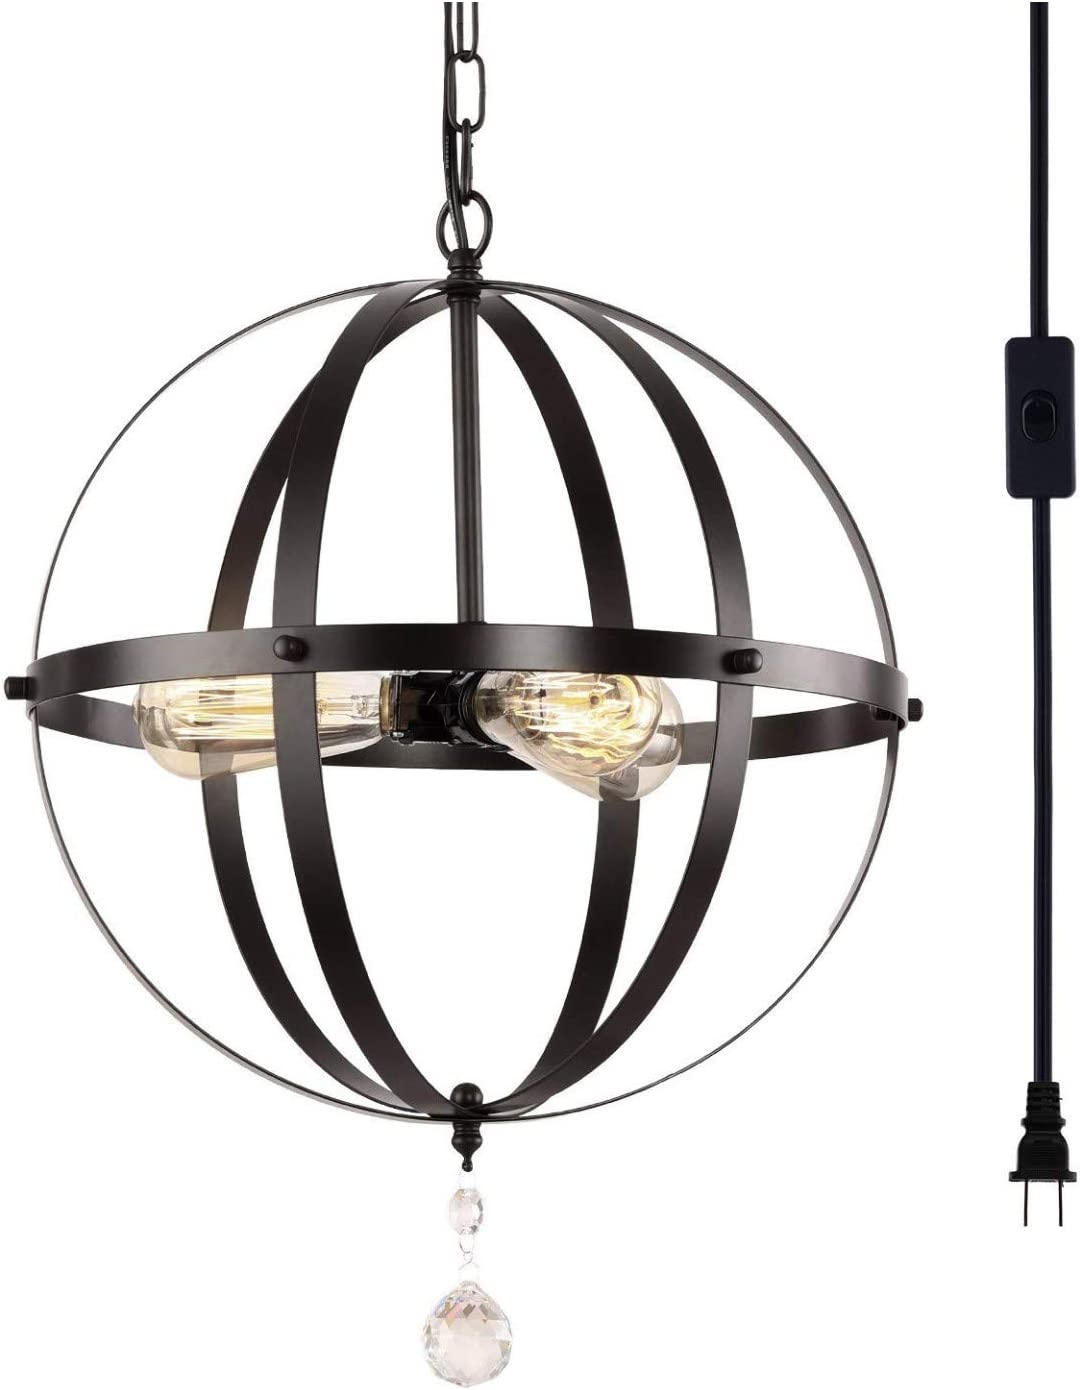 HMVPL Plug in Pendant Light Fixtures, Industrial 3 Light Globe Swag Lamp with 16.4 Ft Hanging Cord and Toggle Switch, Black Finish Vintage Metal Chandelier for Living Room Kitchen Island Hallway